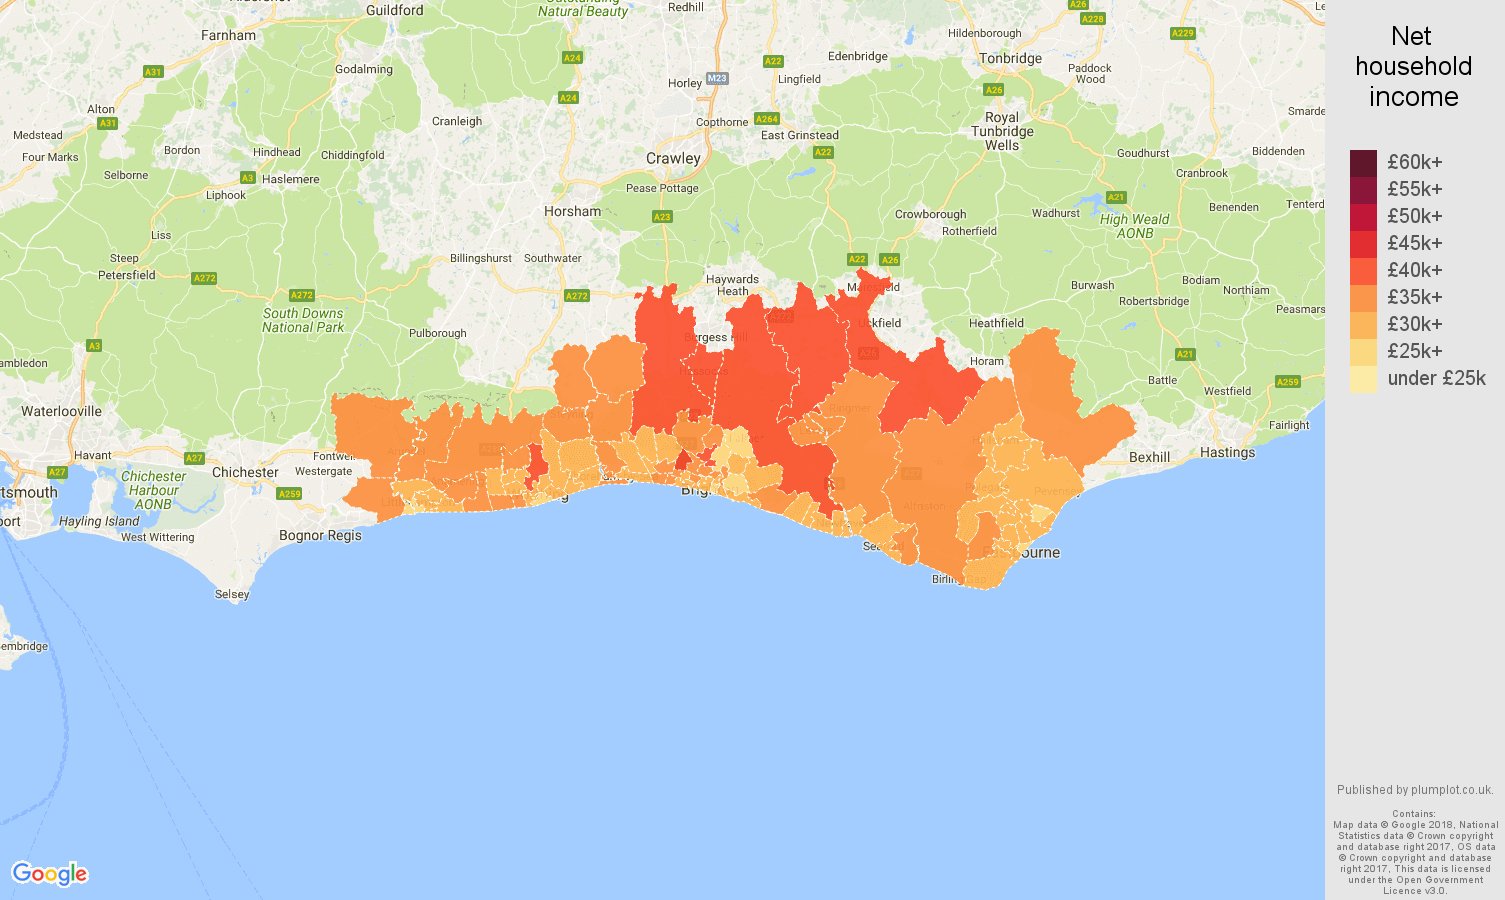 Brighton net household income map